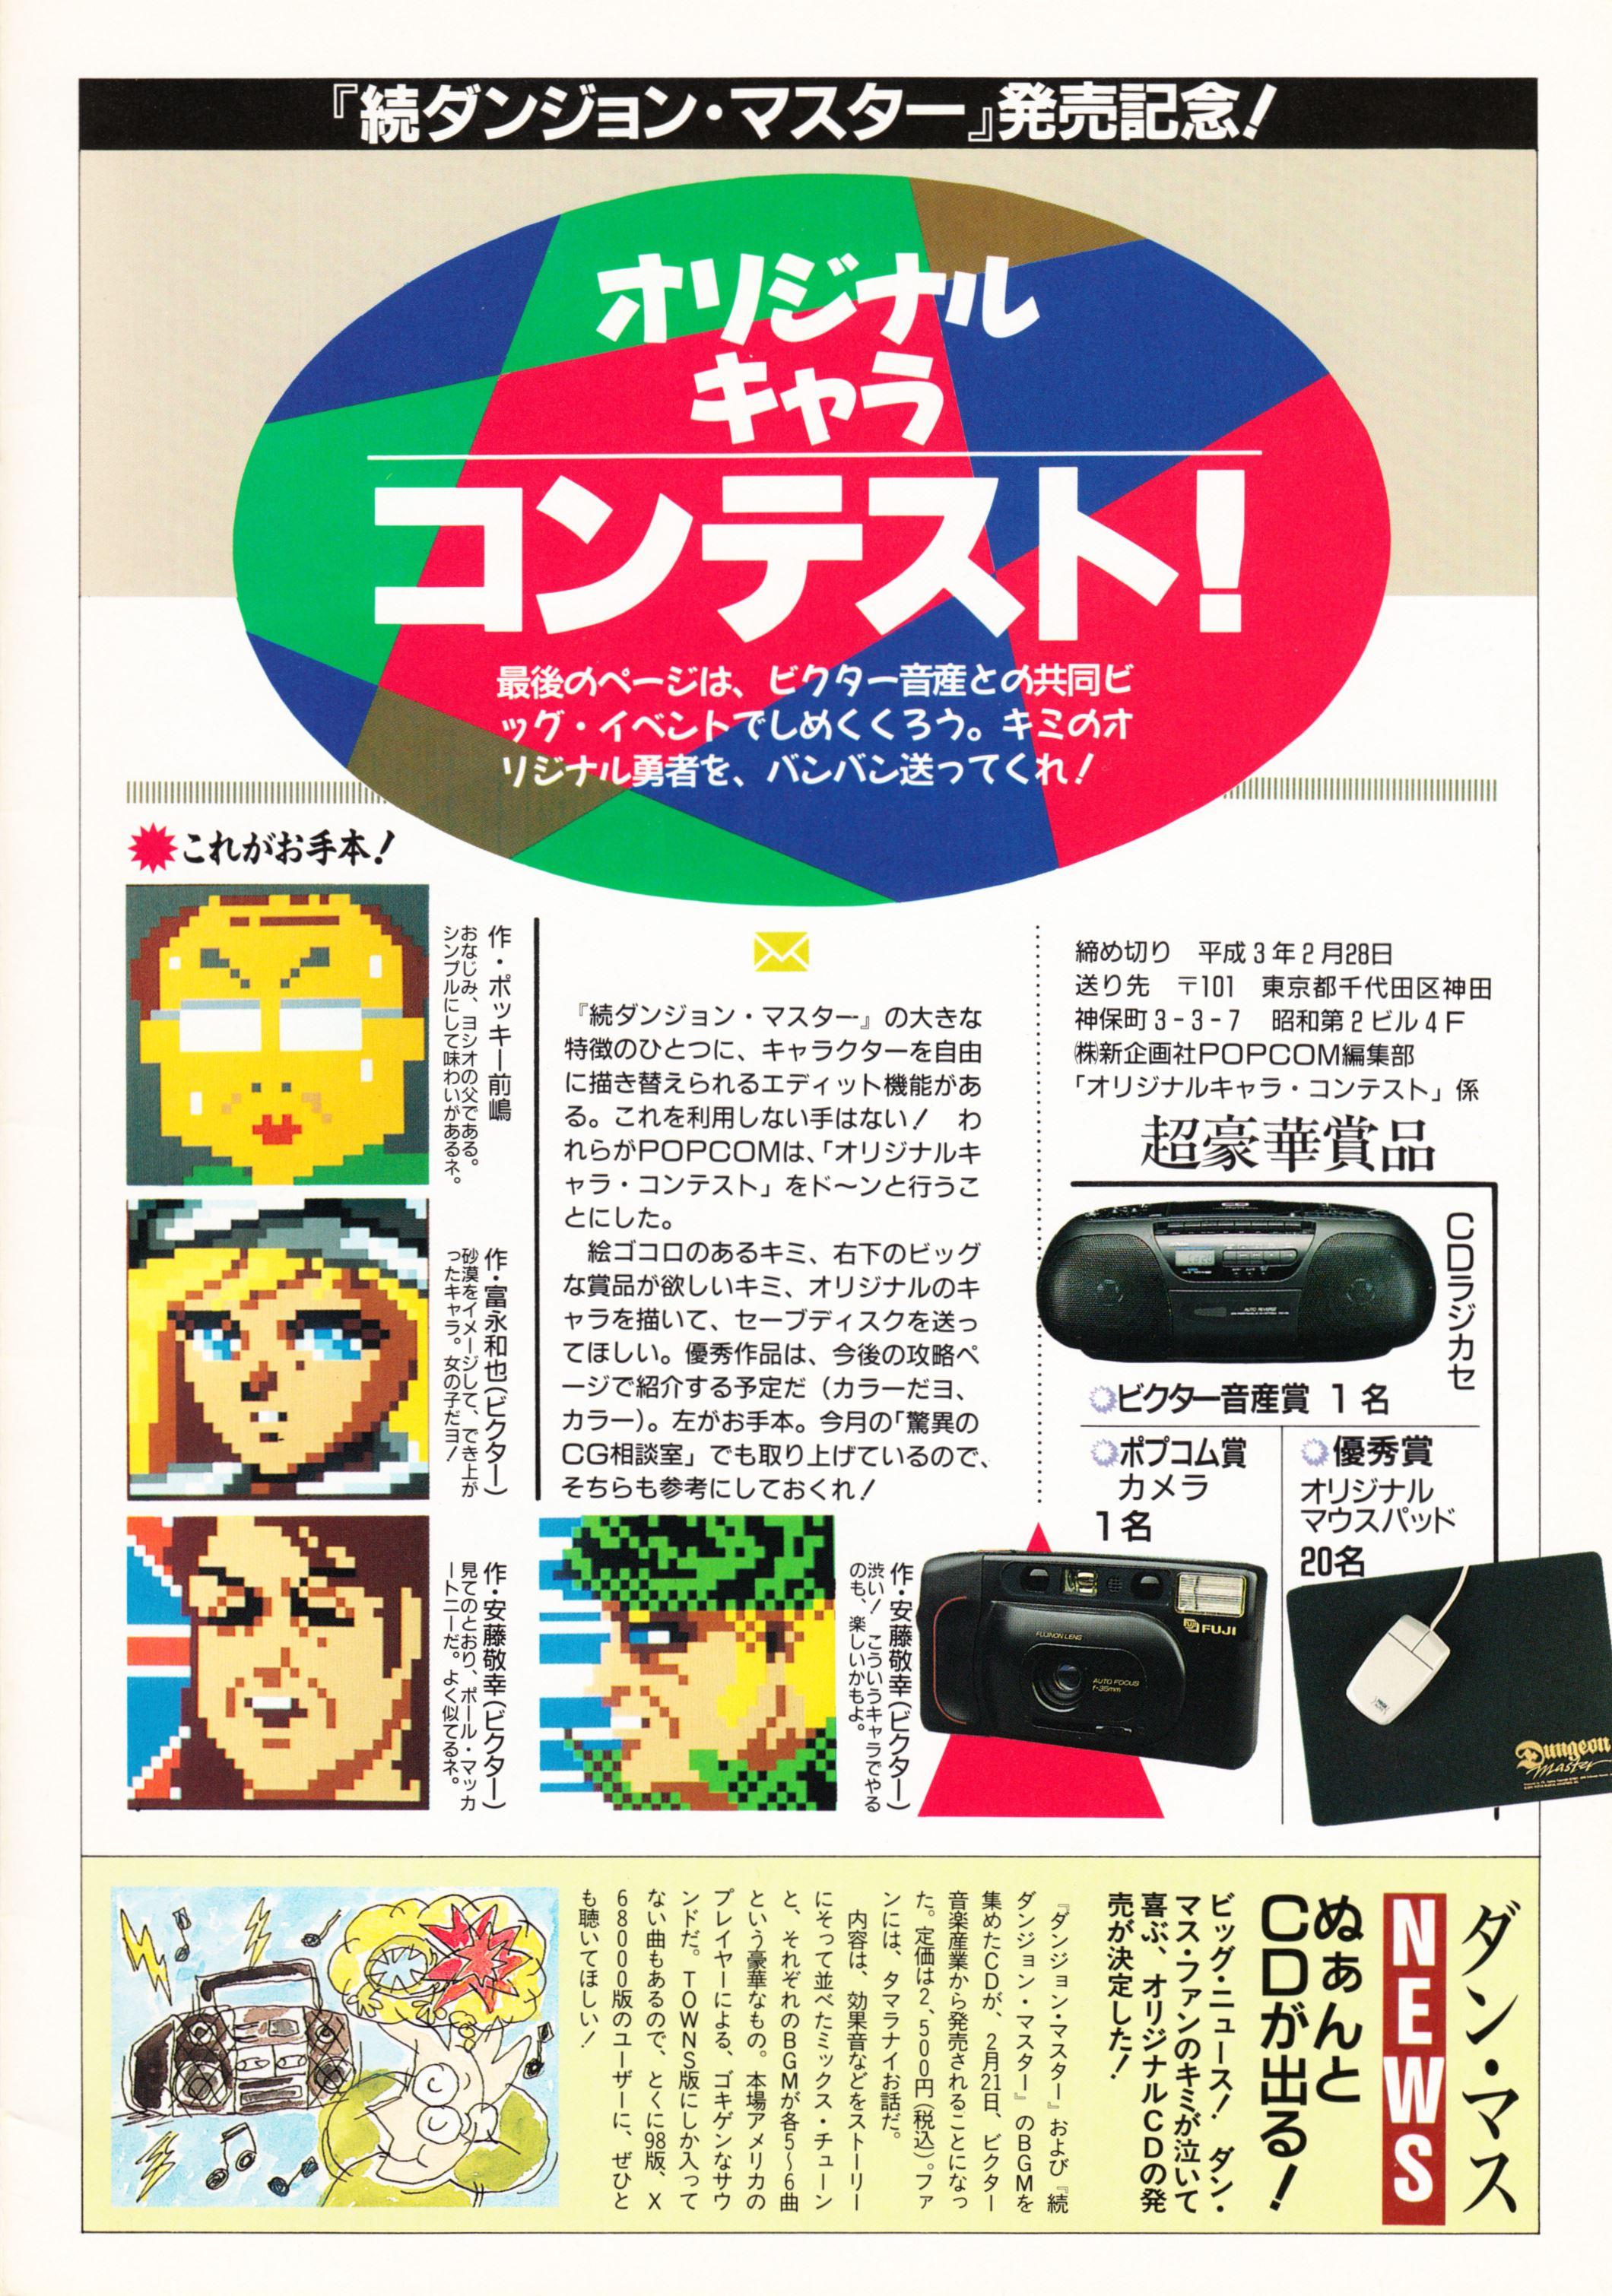 Supplement 1 - Chaos Strikes Back Companion Guide Guide published in Japanese magazine 'Popcom', Vol 9 No 2 01 February 1991, Page 19